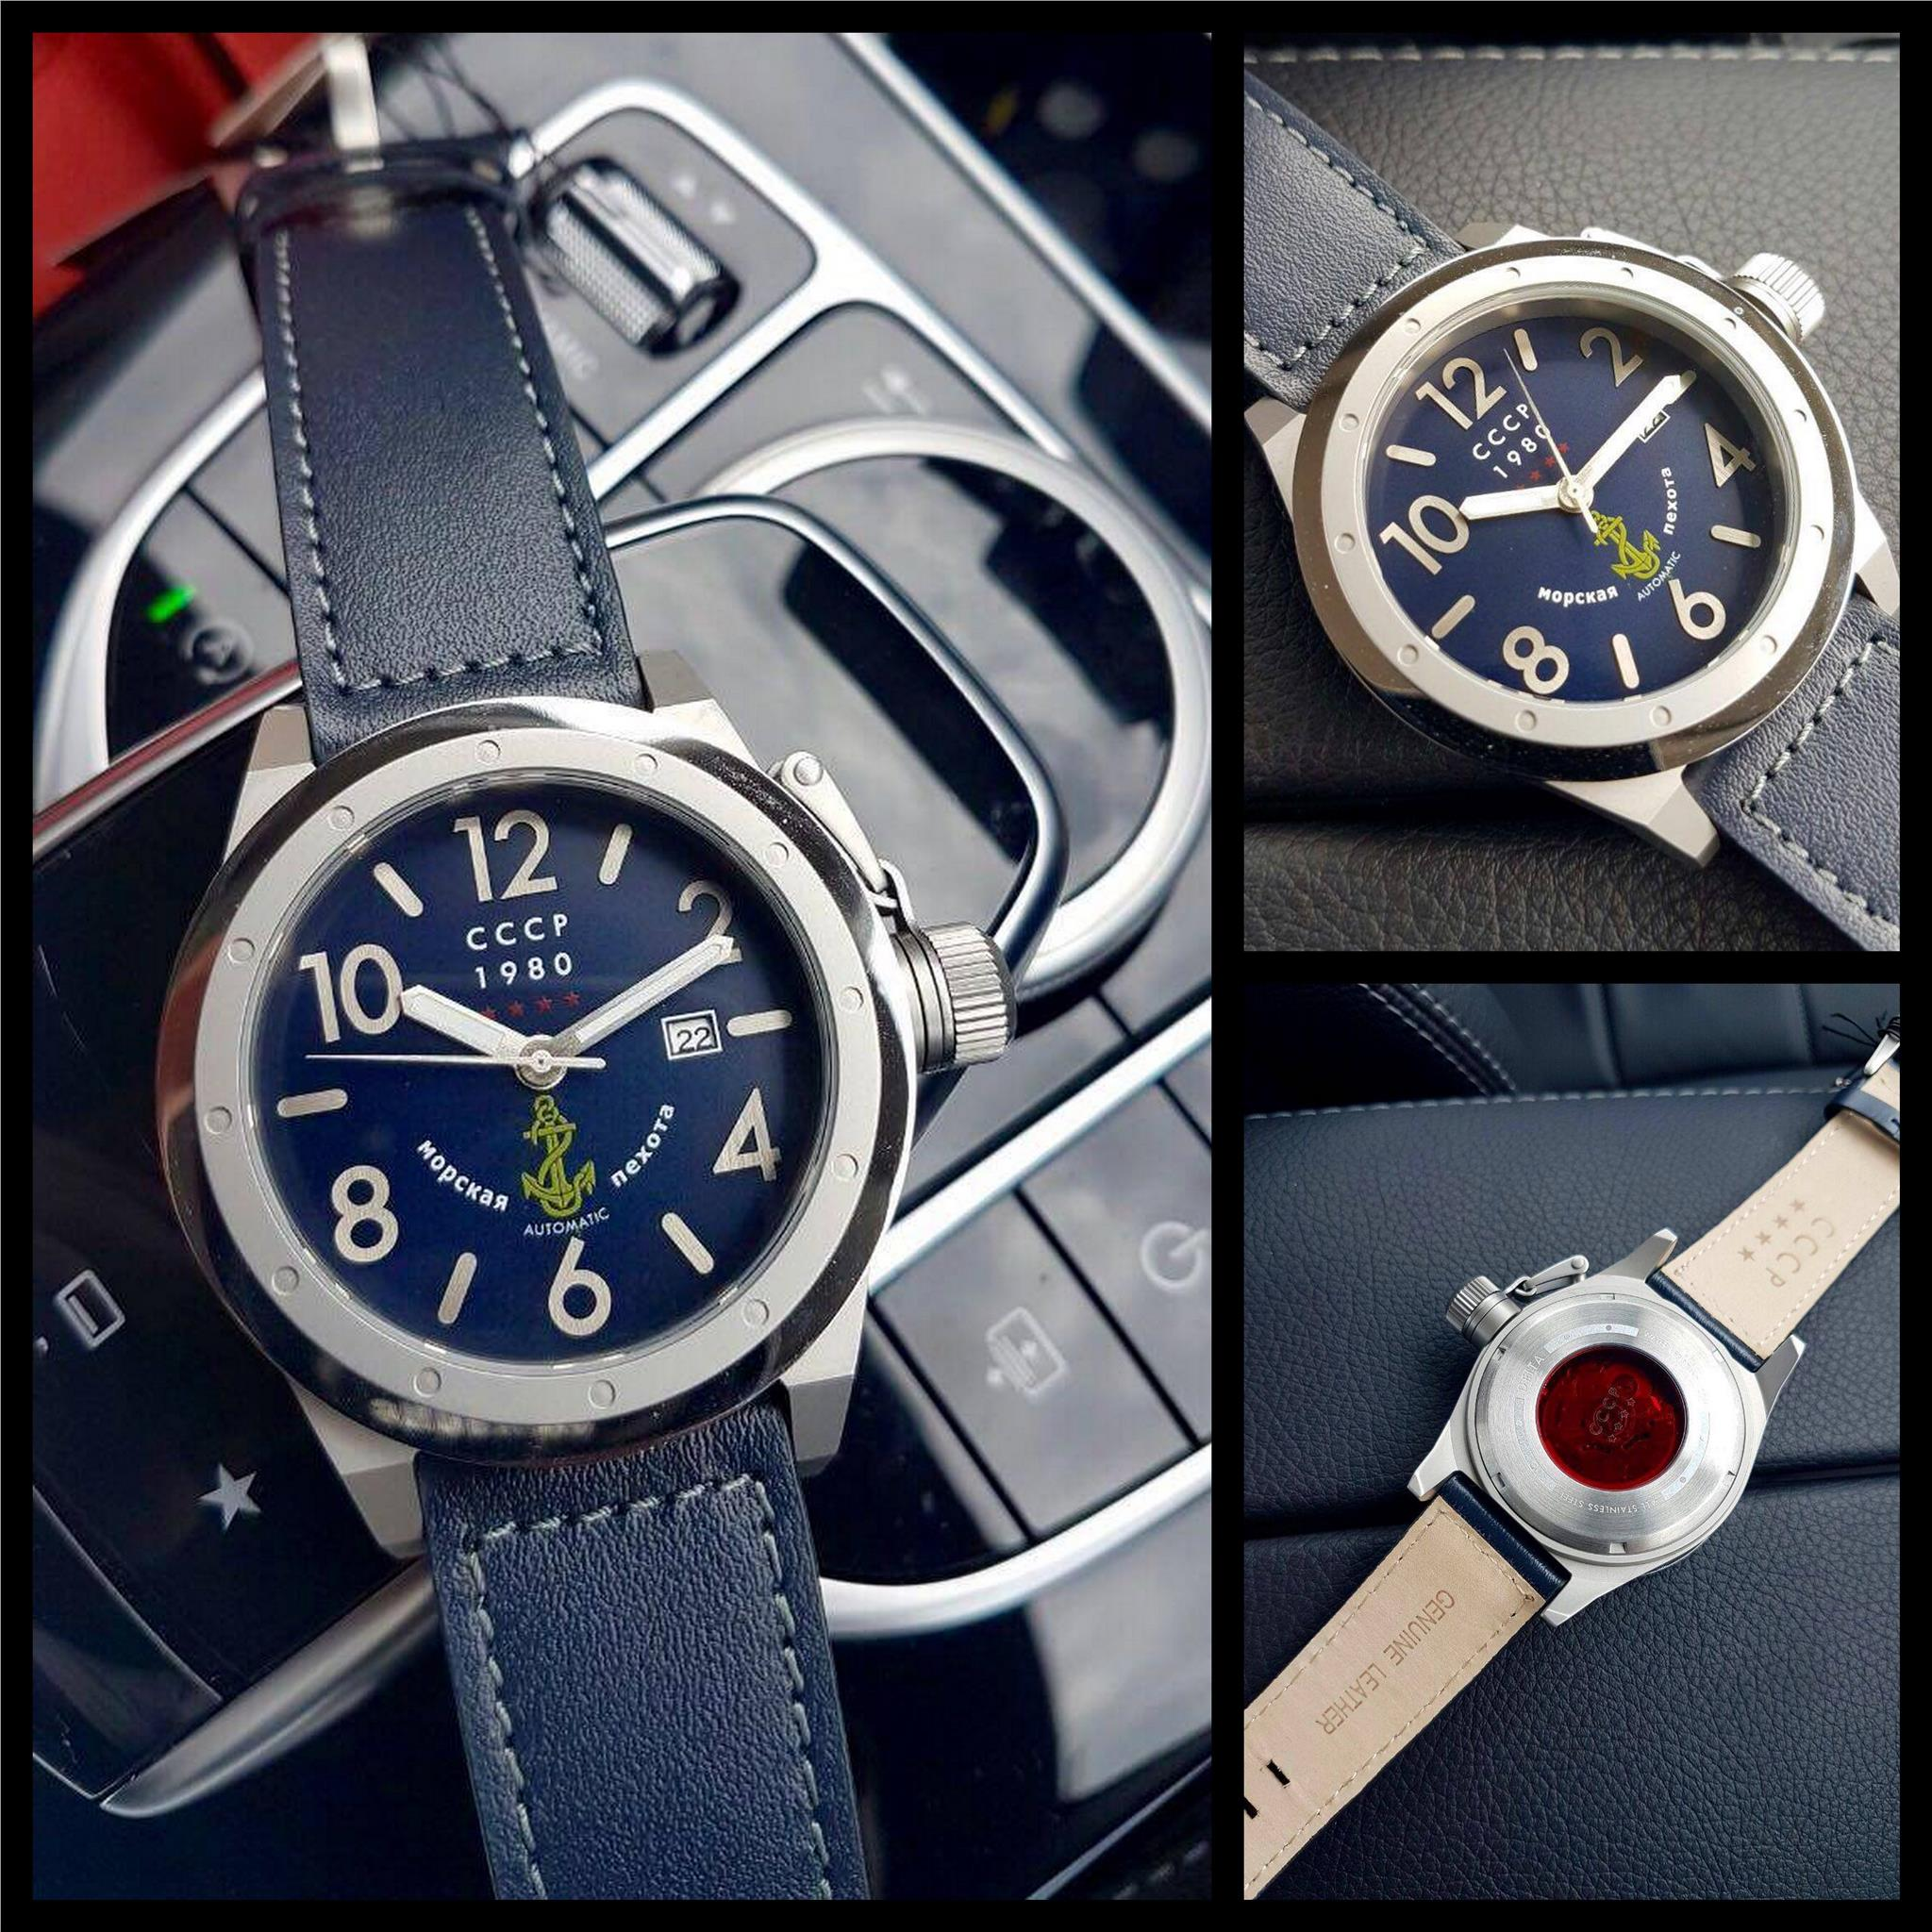 CCCP Russia Delta Automatic 49mm Watch